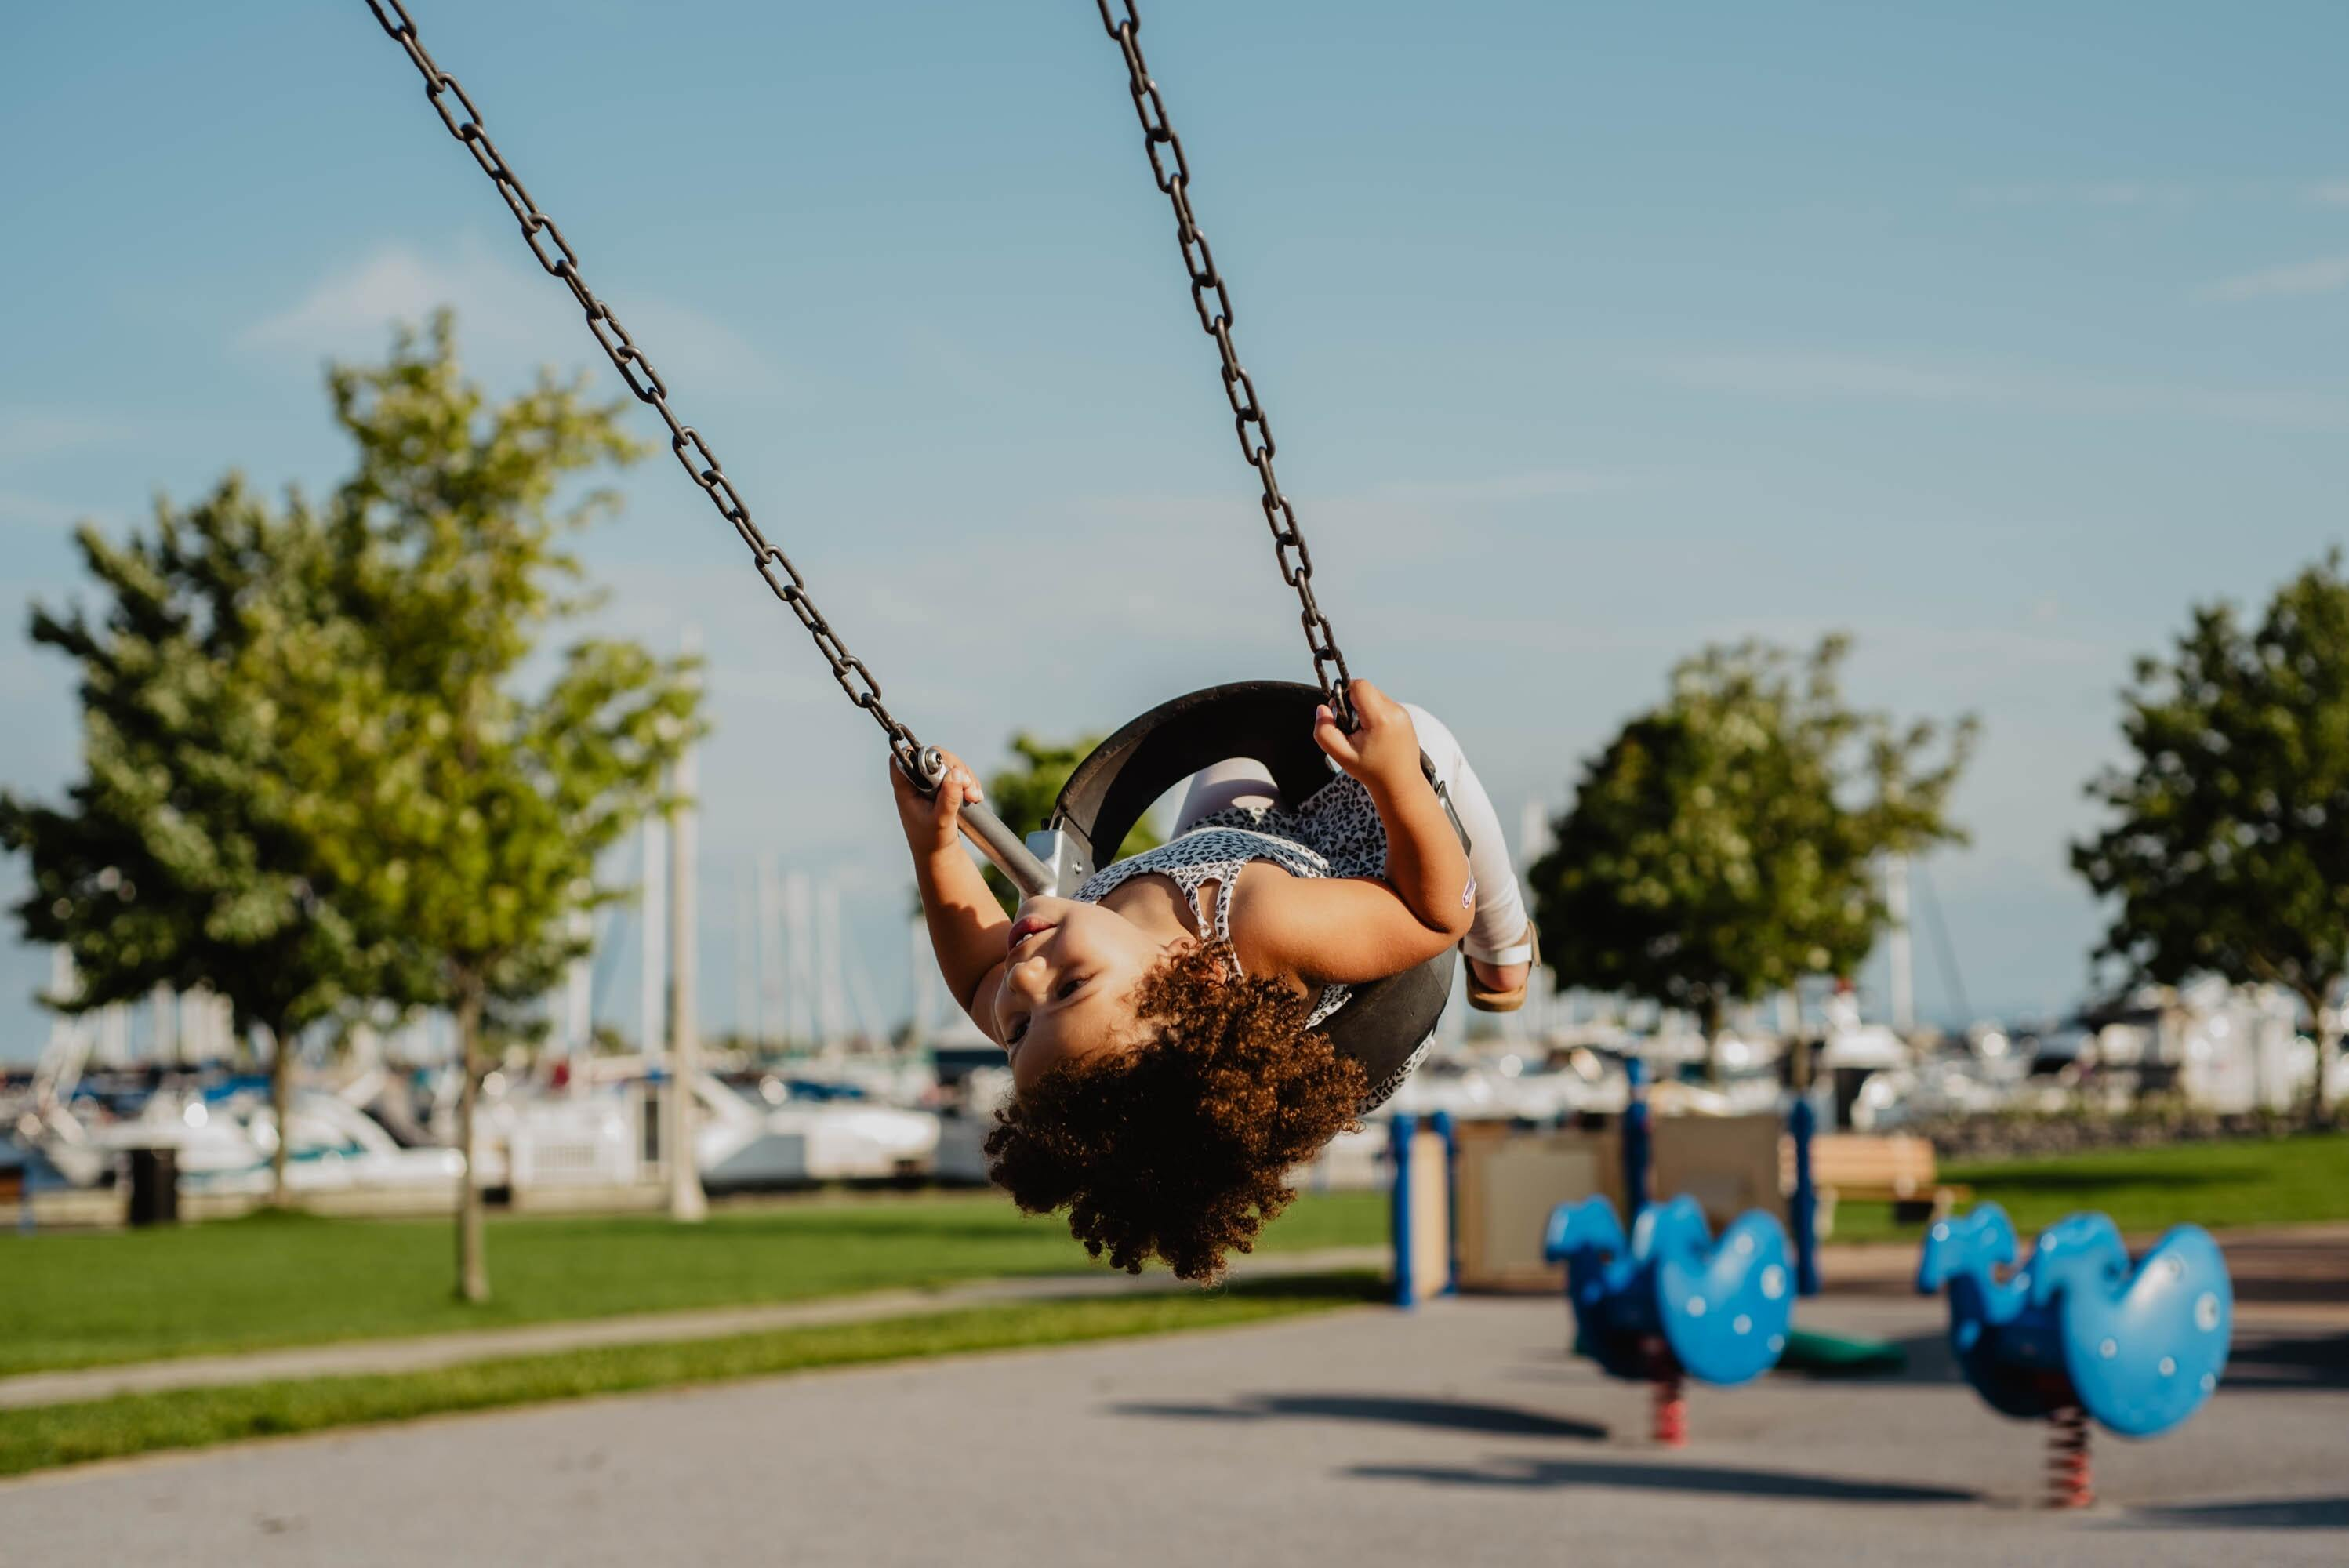 a child on a tire swing